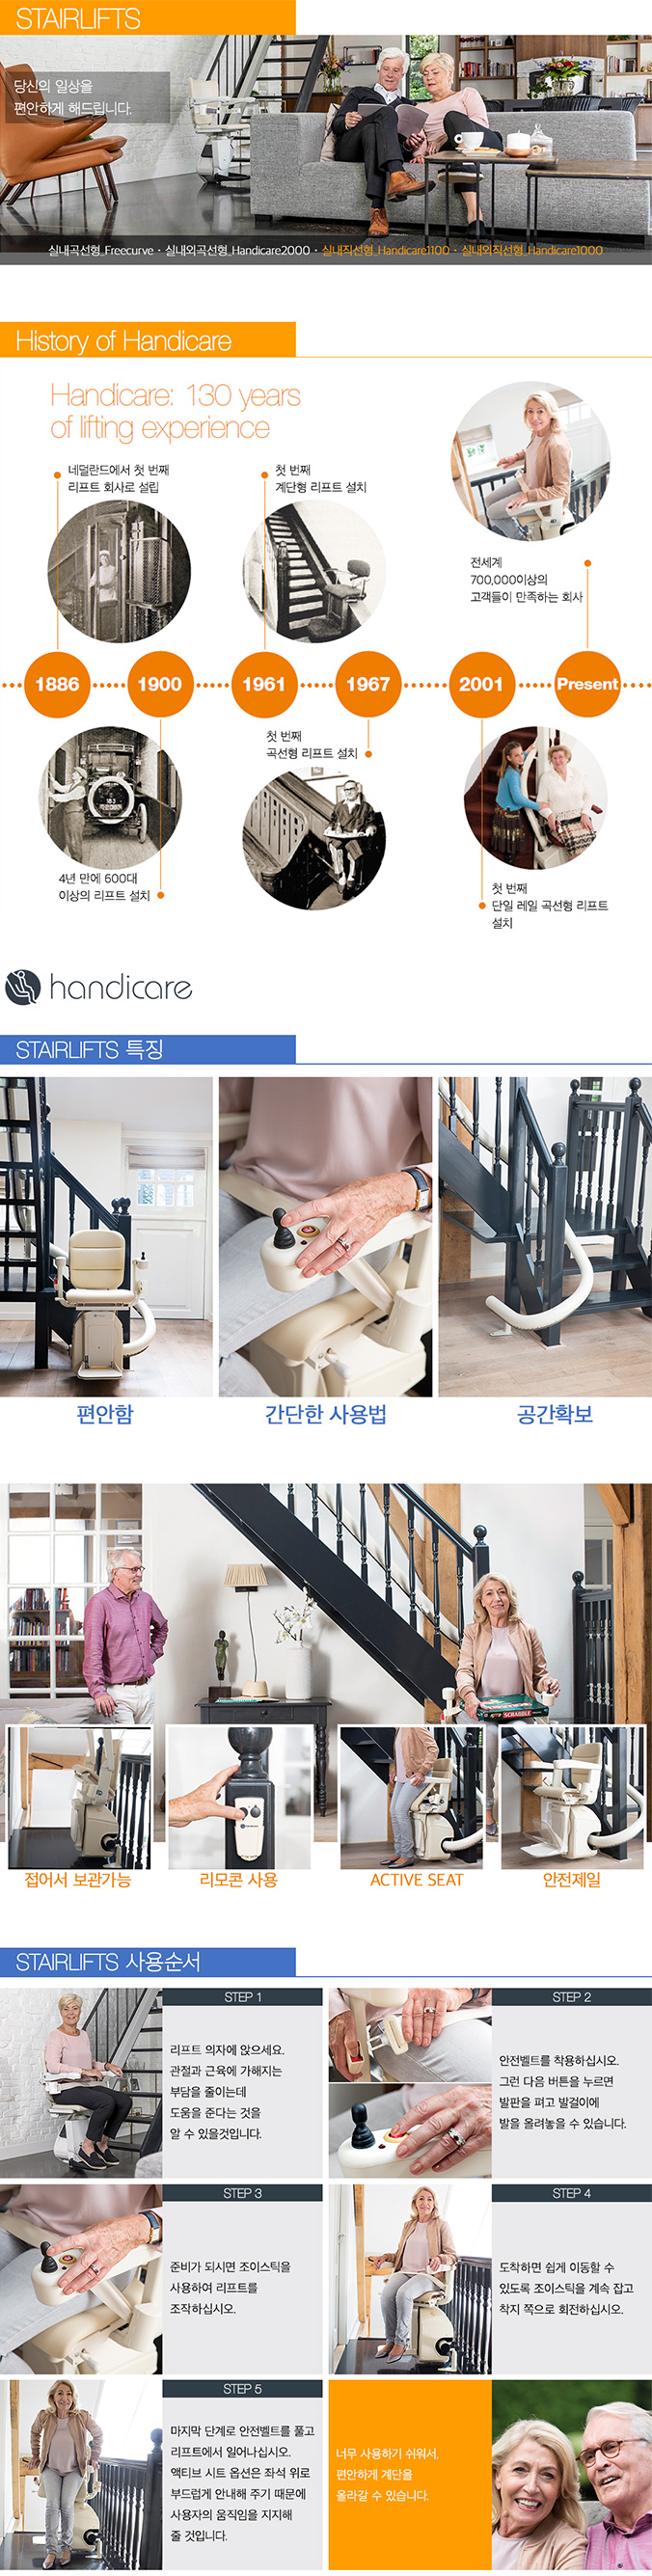 Stairlifts-header_step작게_광학_676.jpg